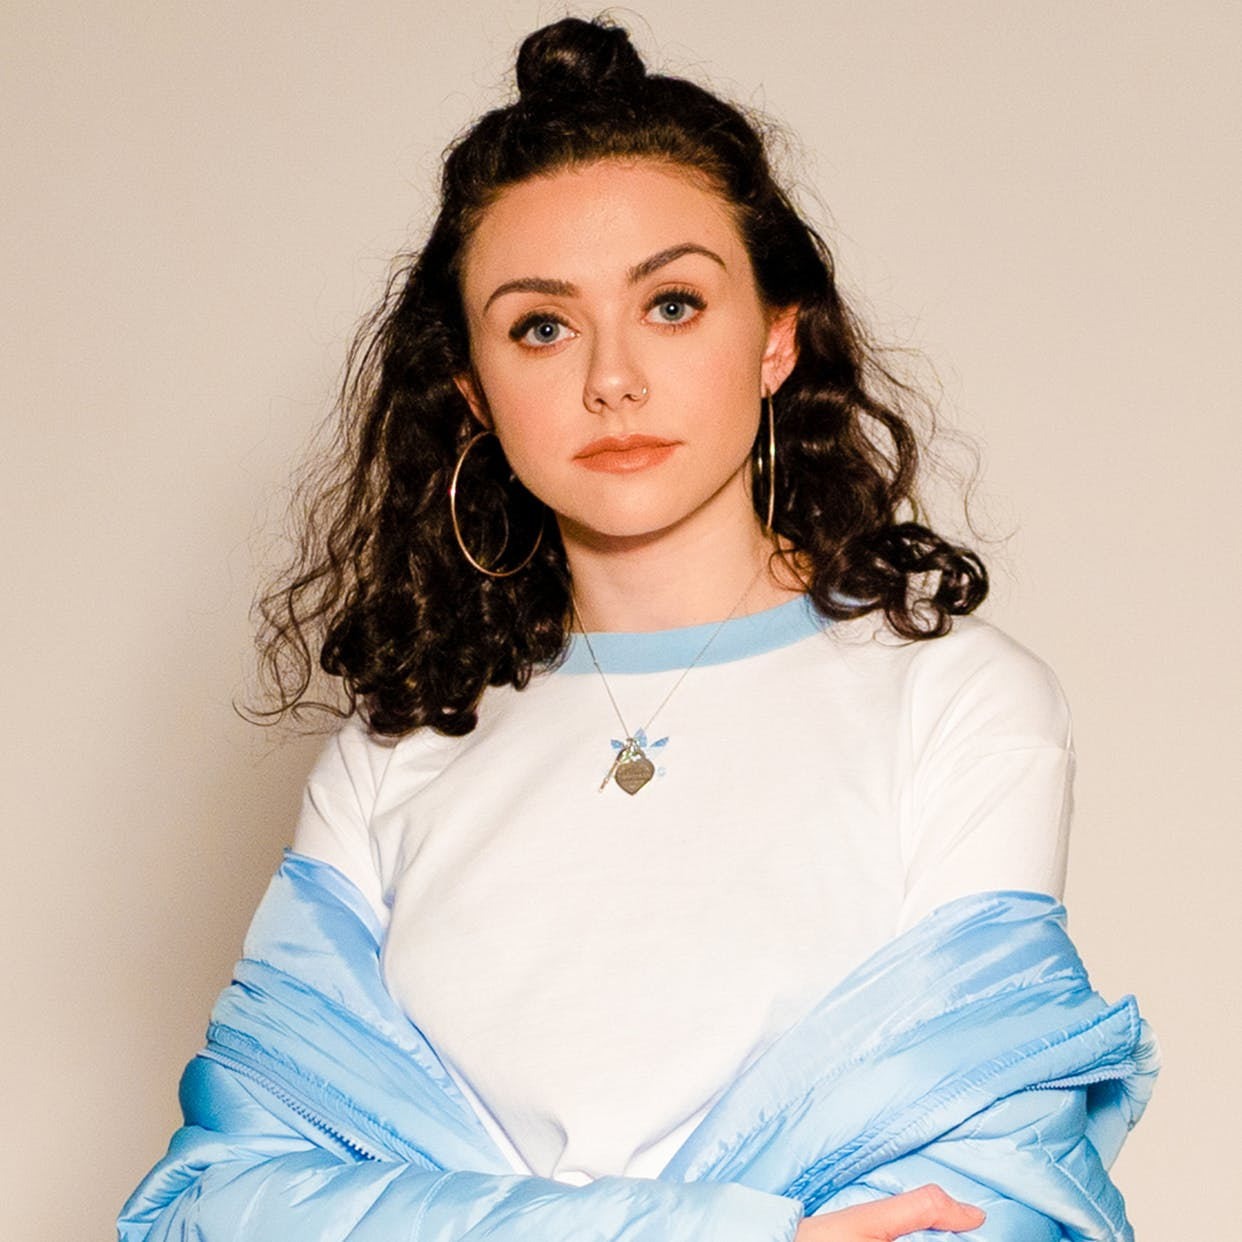 WATCH: Backstage with Lucy Deakin